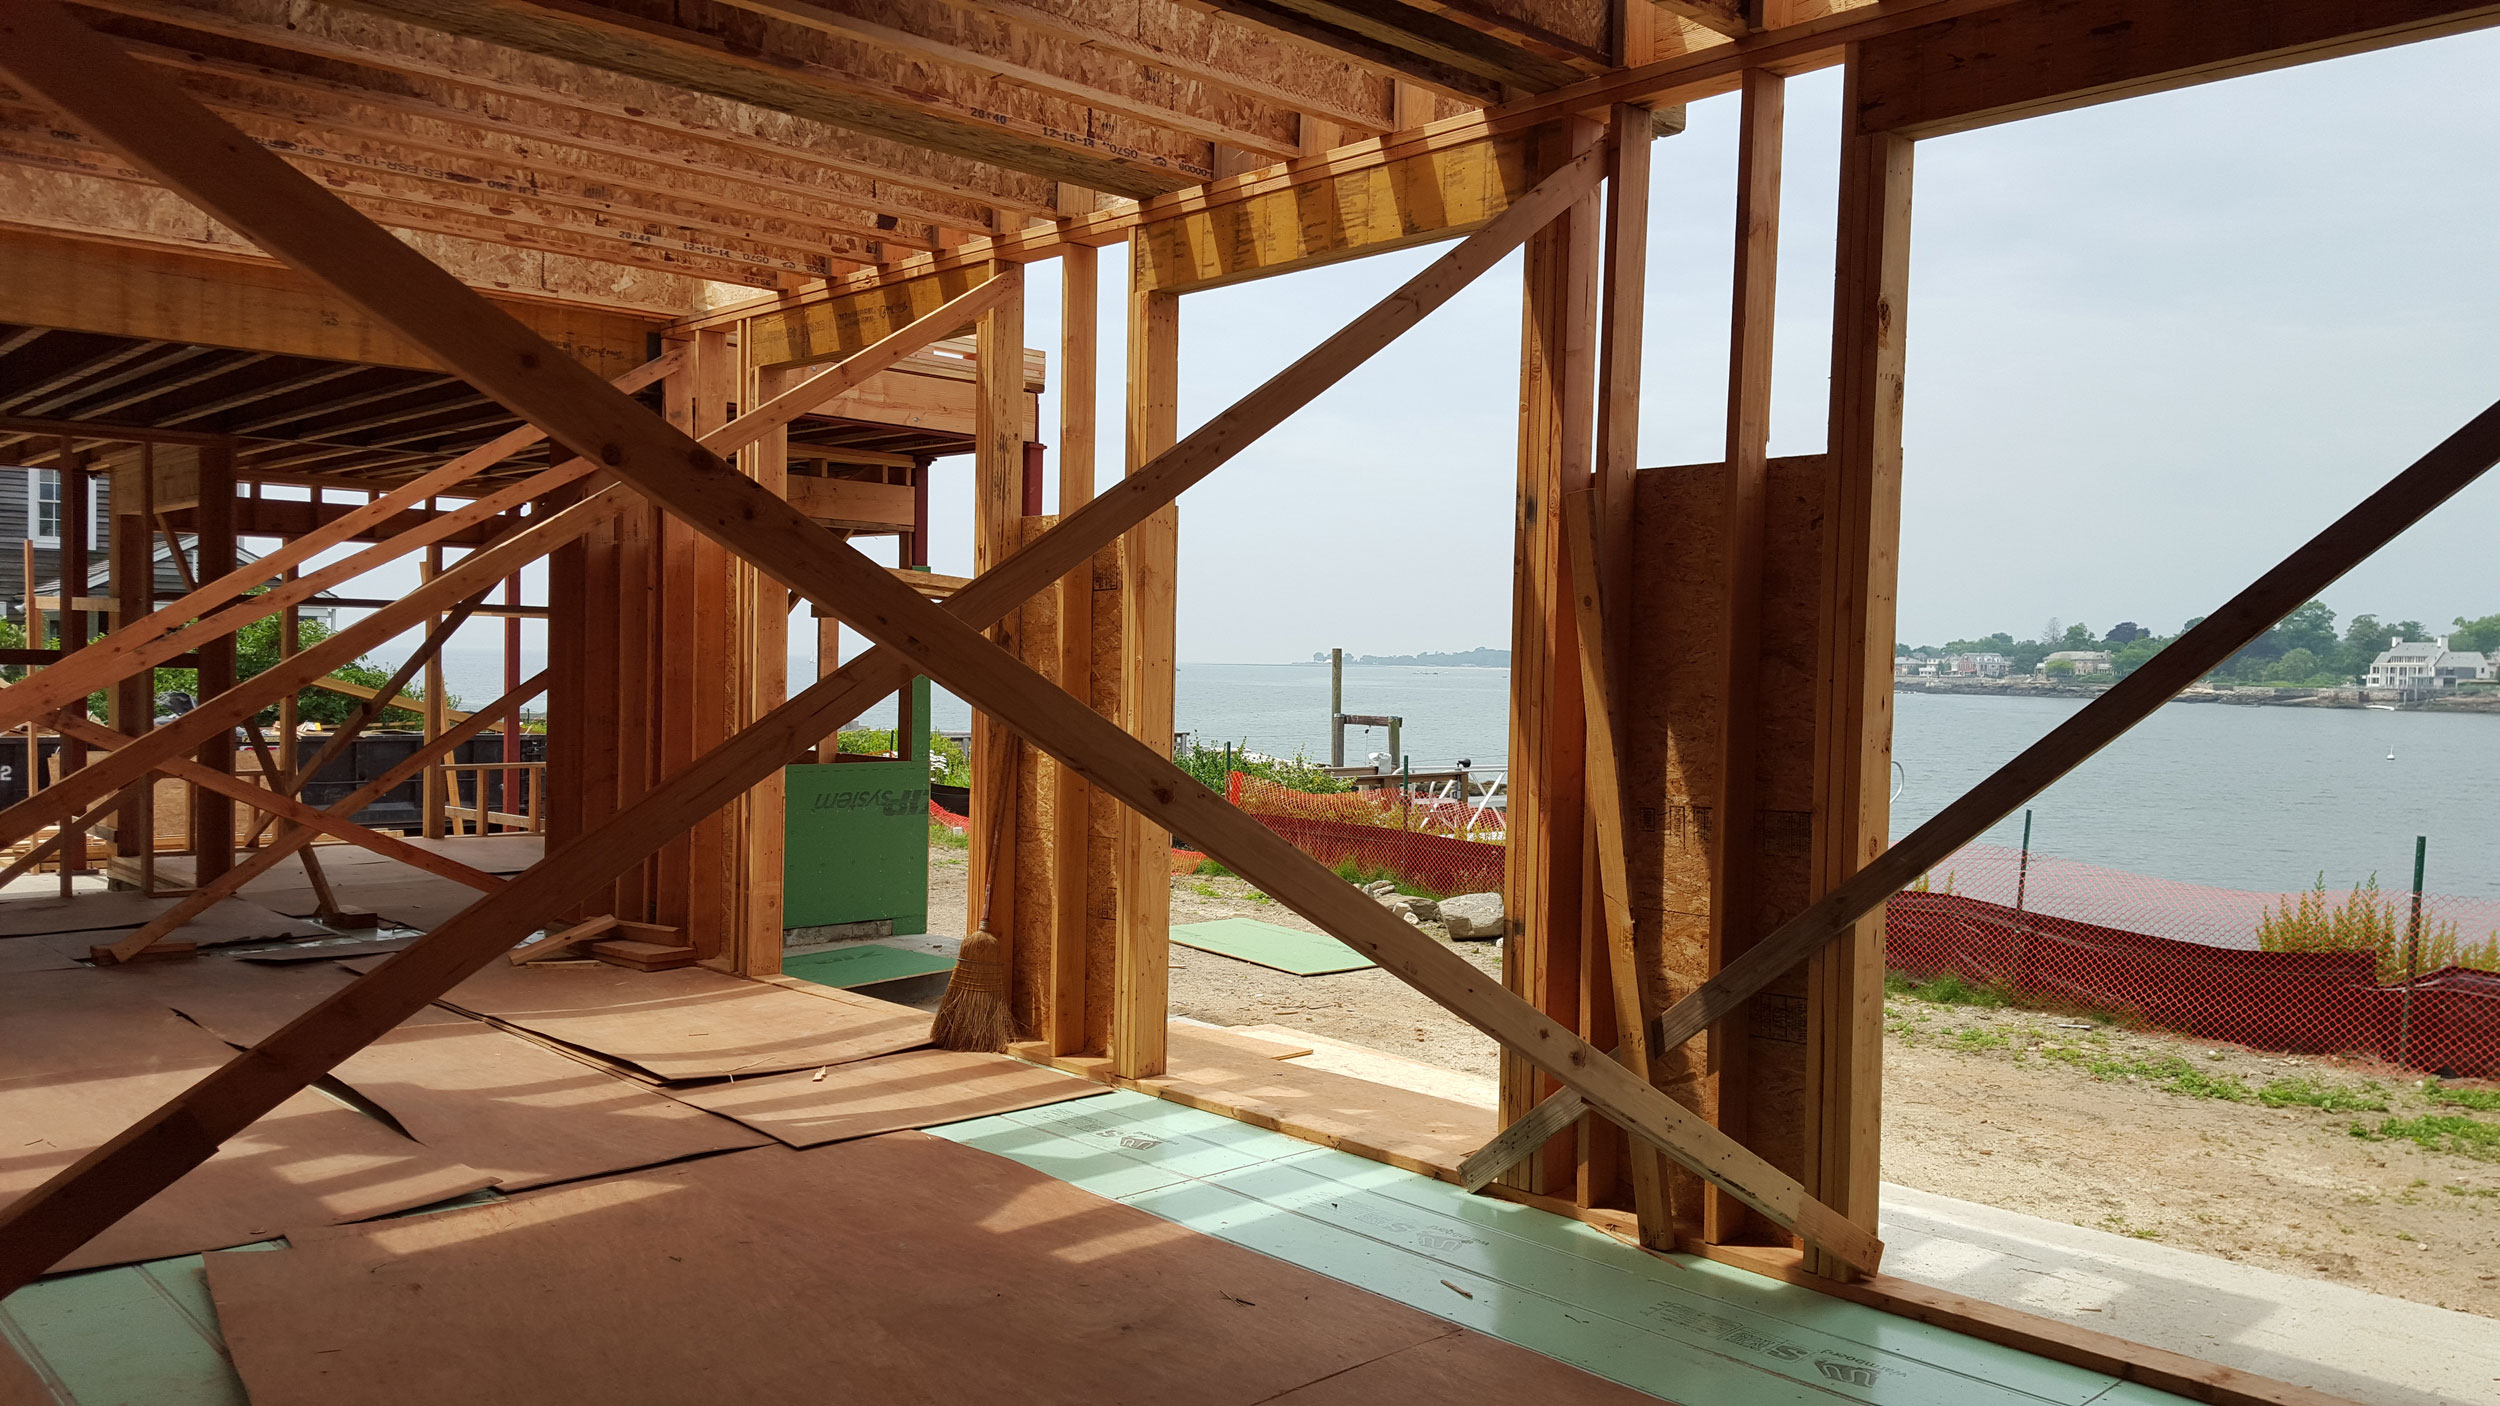 A Stamford home with a water view, under construction.